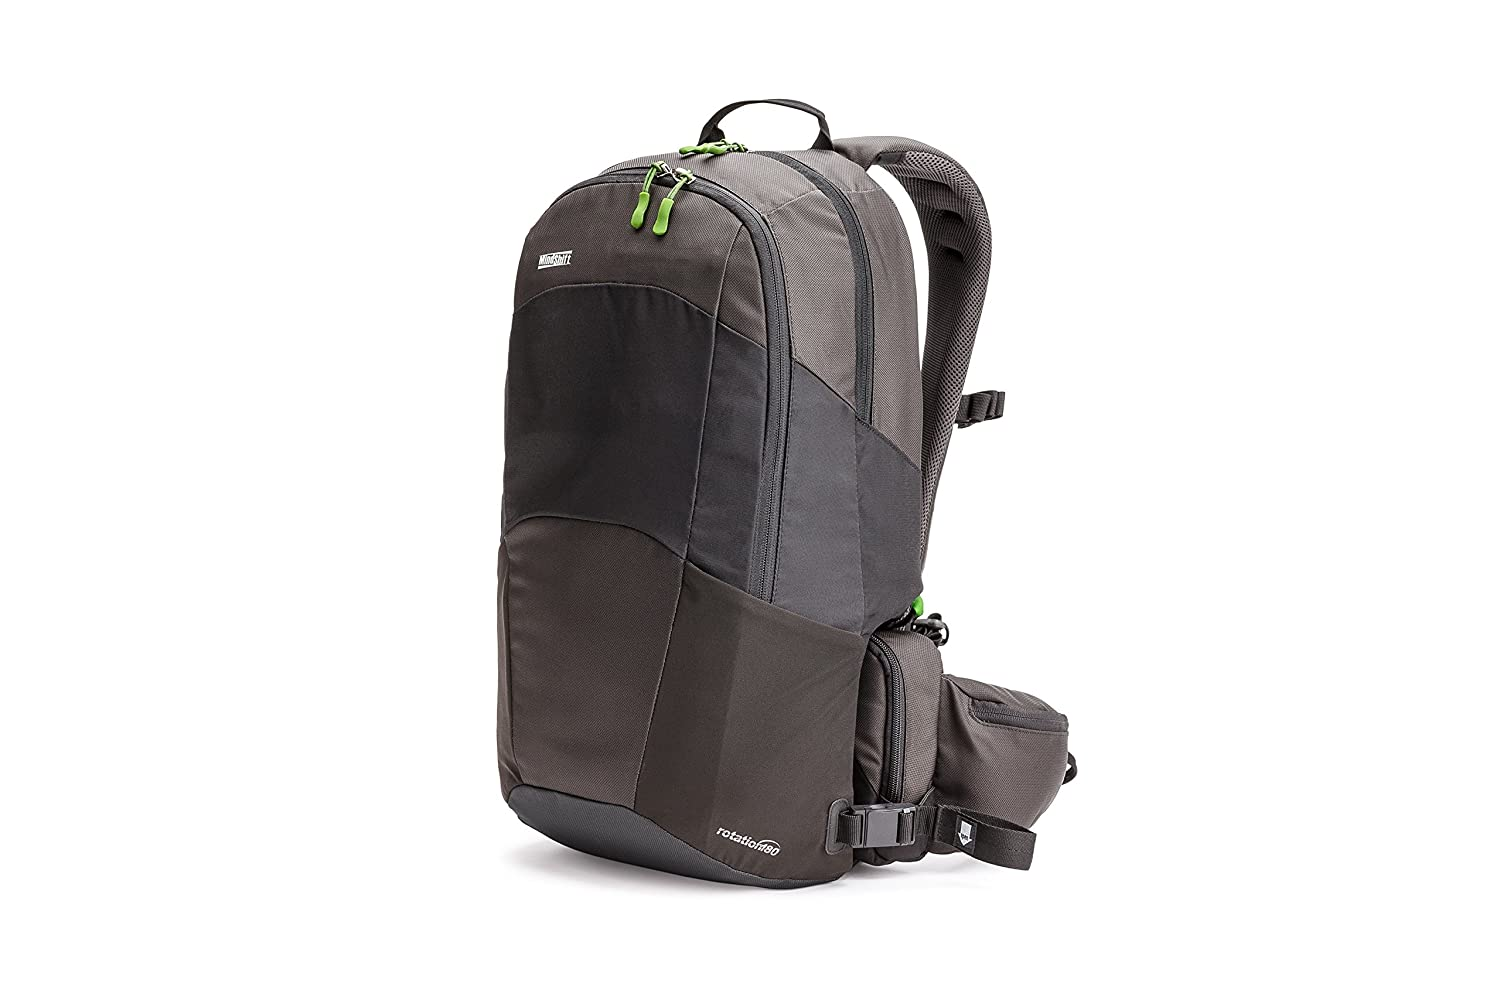 Gear Review: Rotation180° Travel Away 22L Backpack - Pickpocket Proof Travel Bag